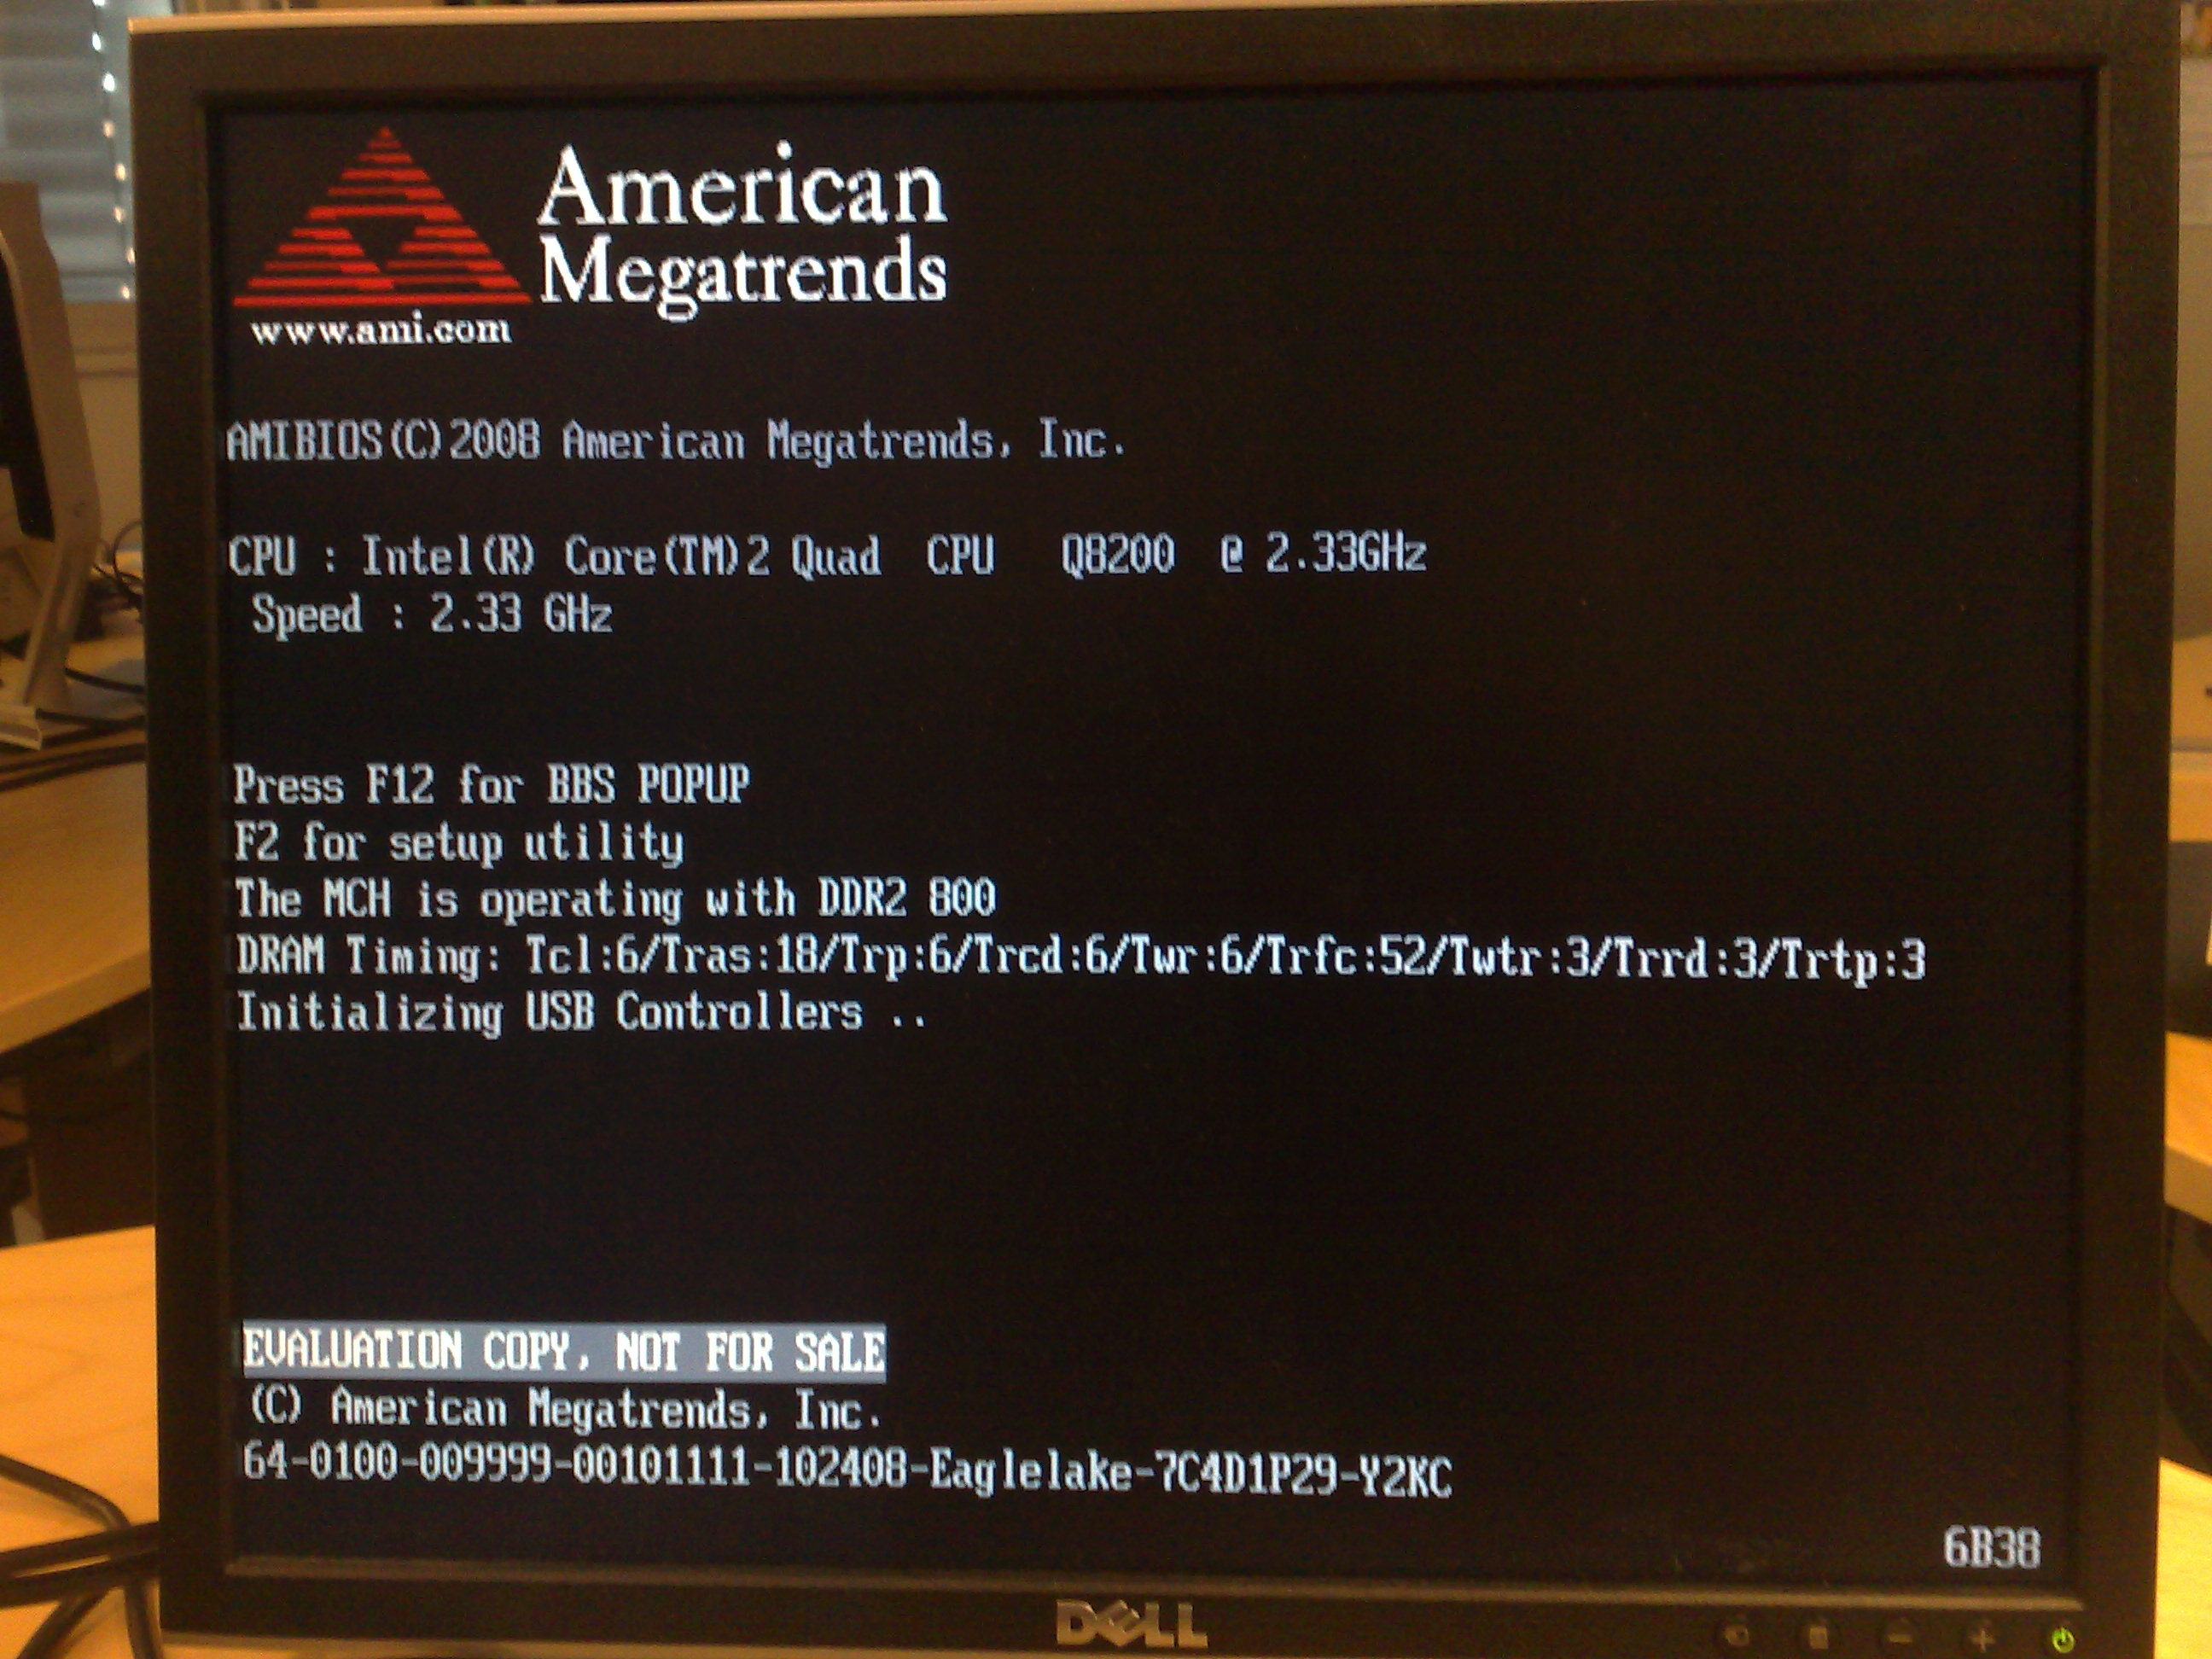 Dell Vostro 420 BIOS shows 'EVALUATION COPY, NOT FOR SALE'